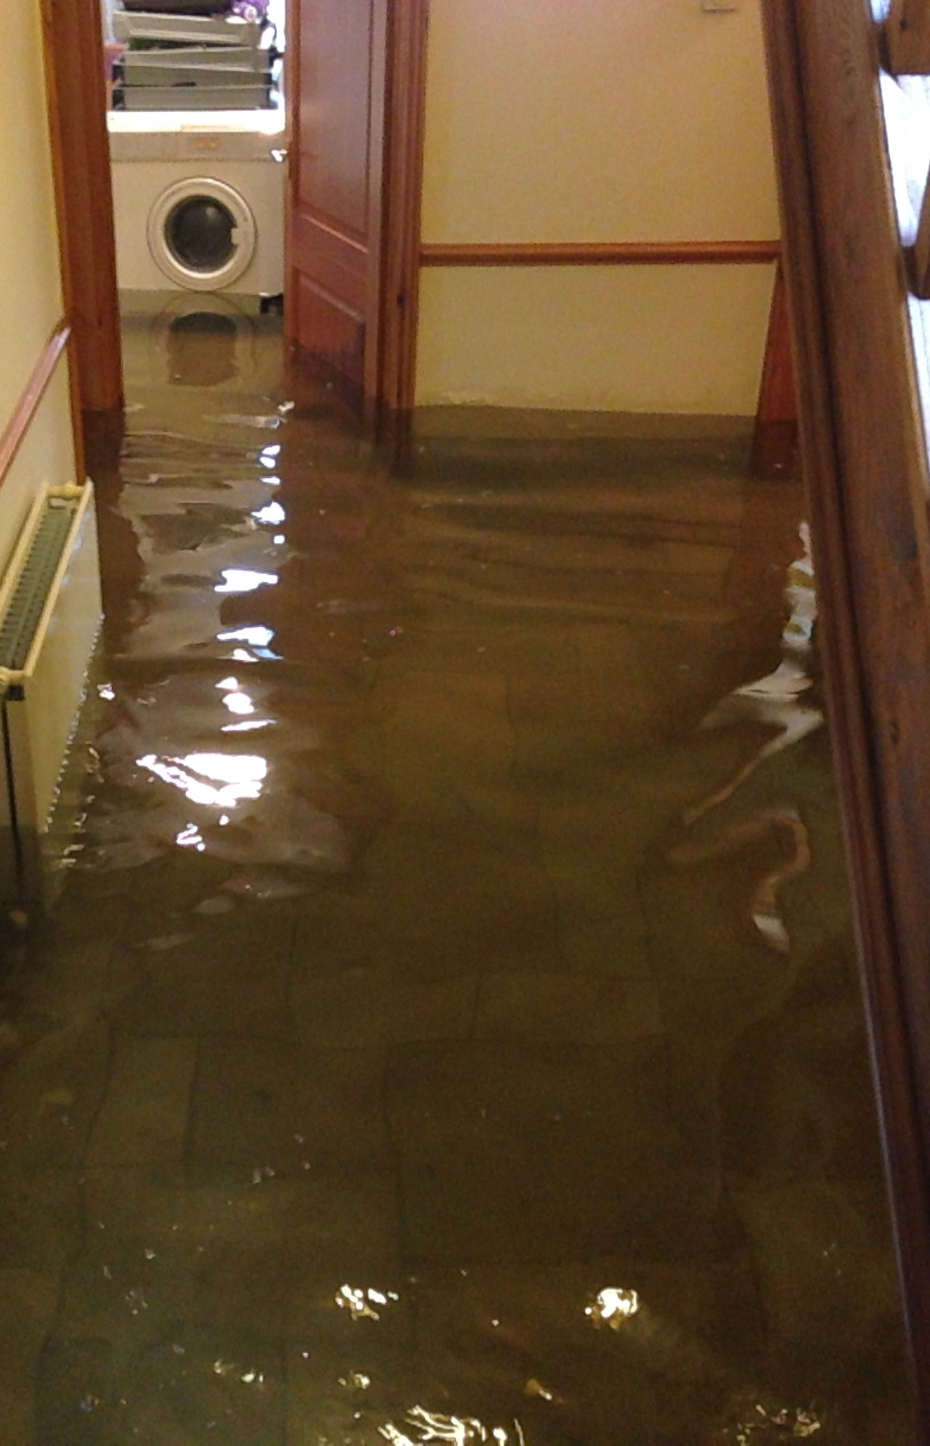 Flooded hallway with washing machine visible